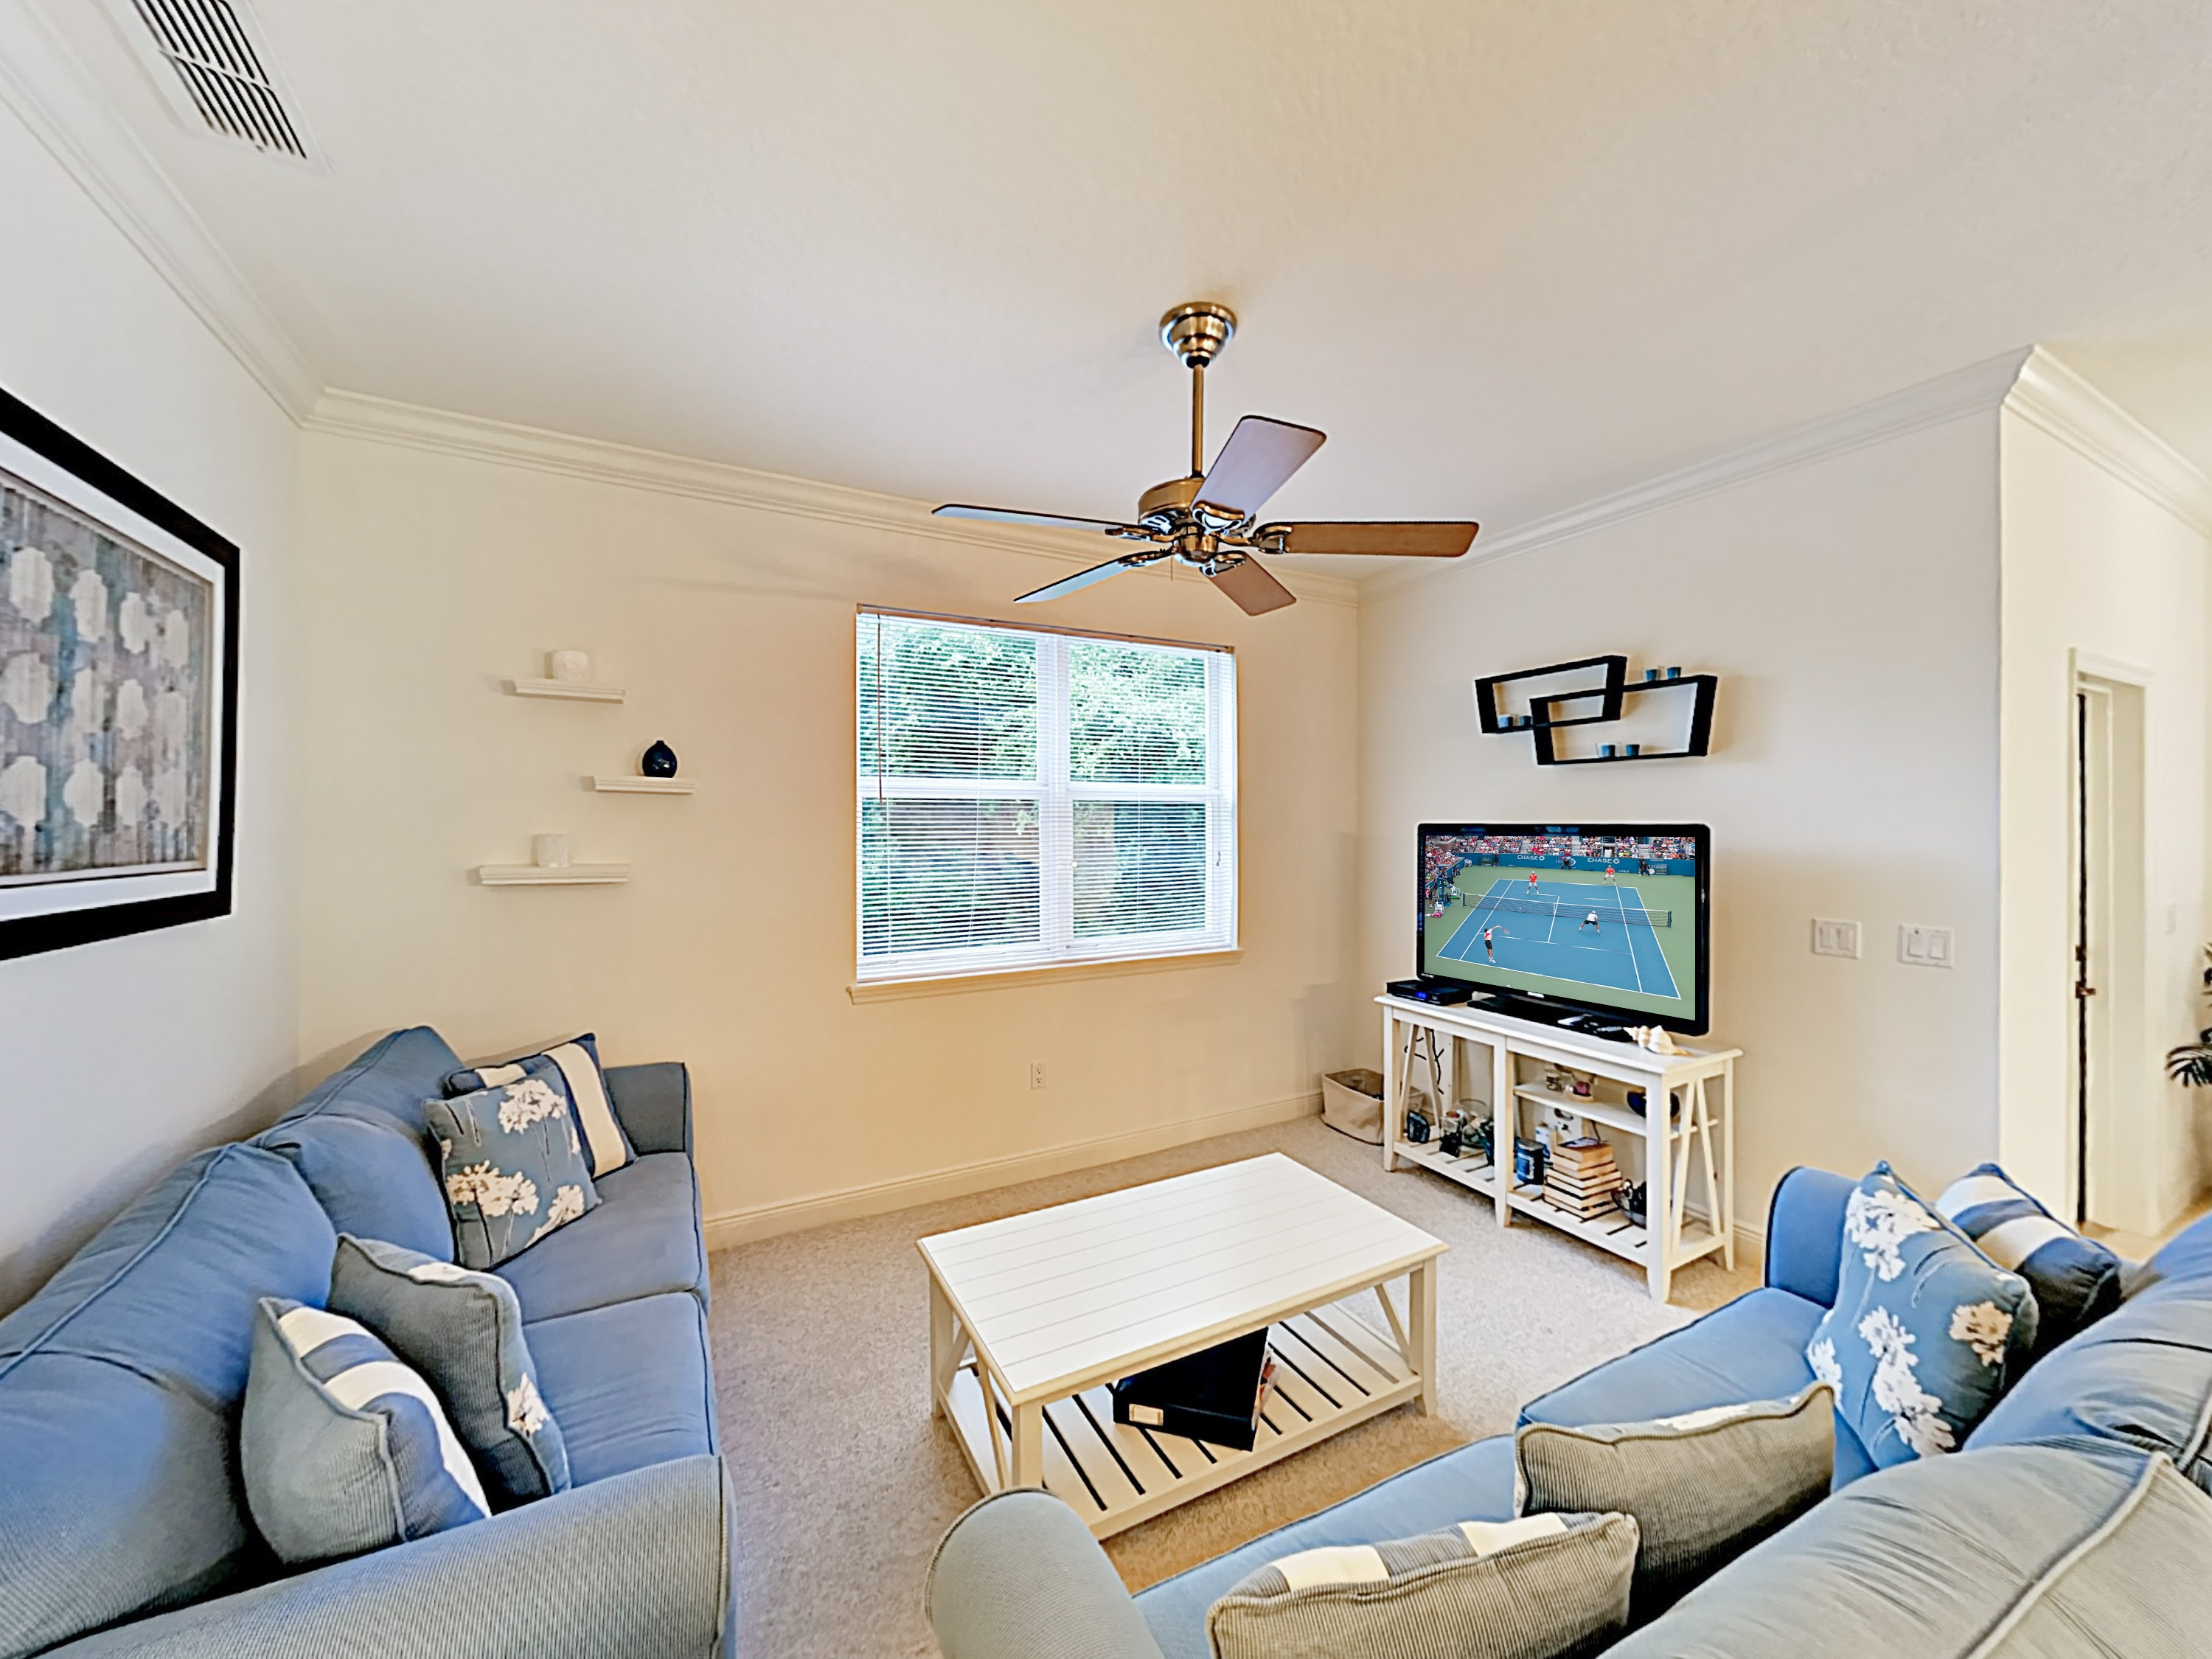 Welcome to Palm Coast! This townhouse is professionally managed by TurnKey Vacation Rentals.